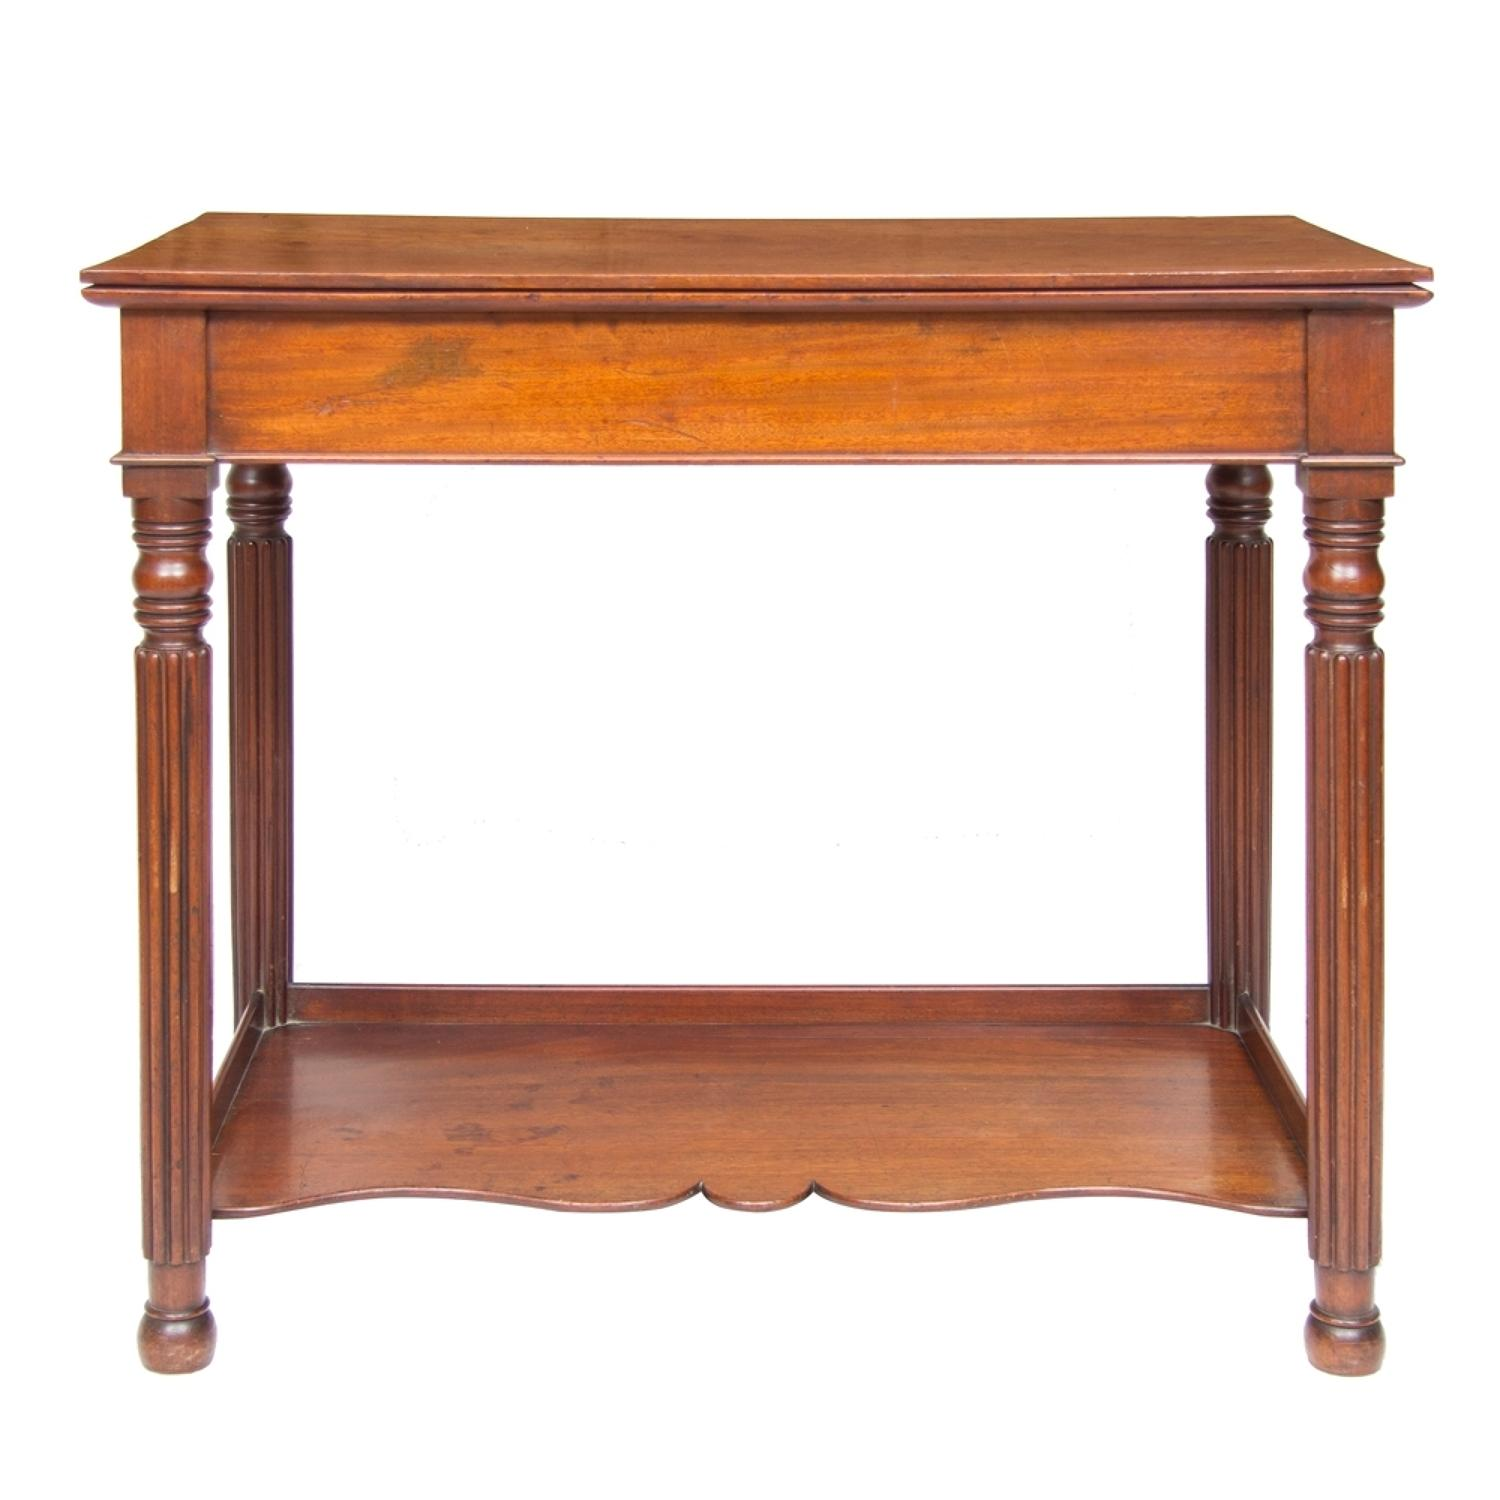 An 1840'S Mahogany Hall Table